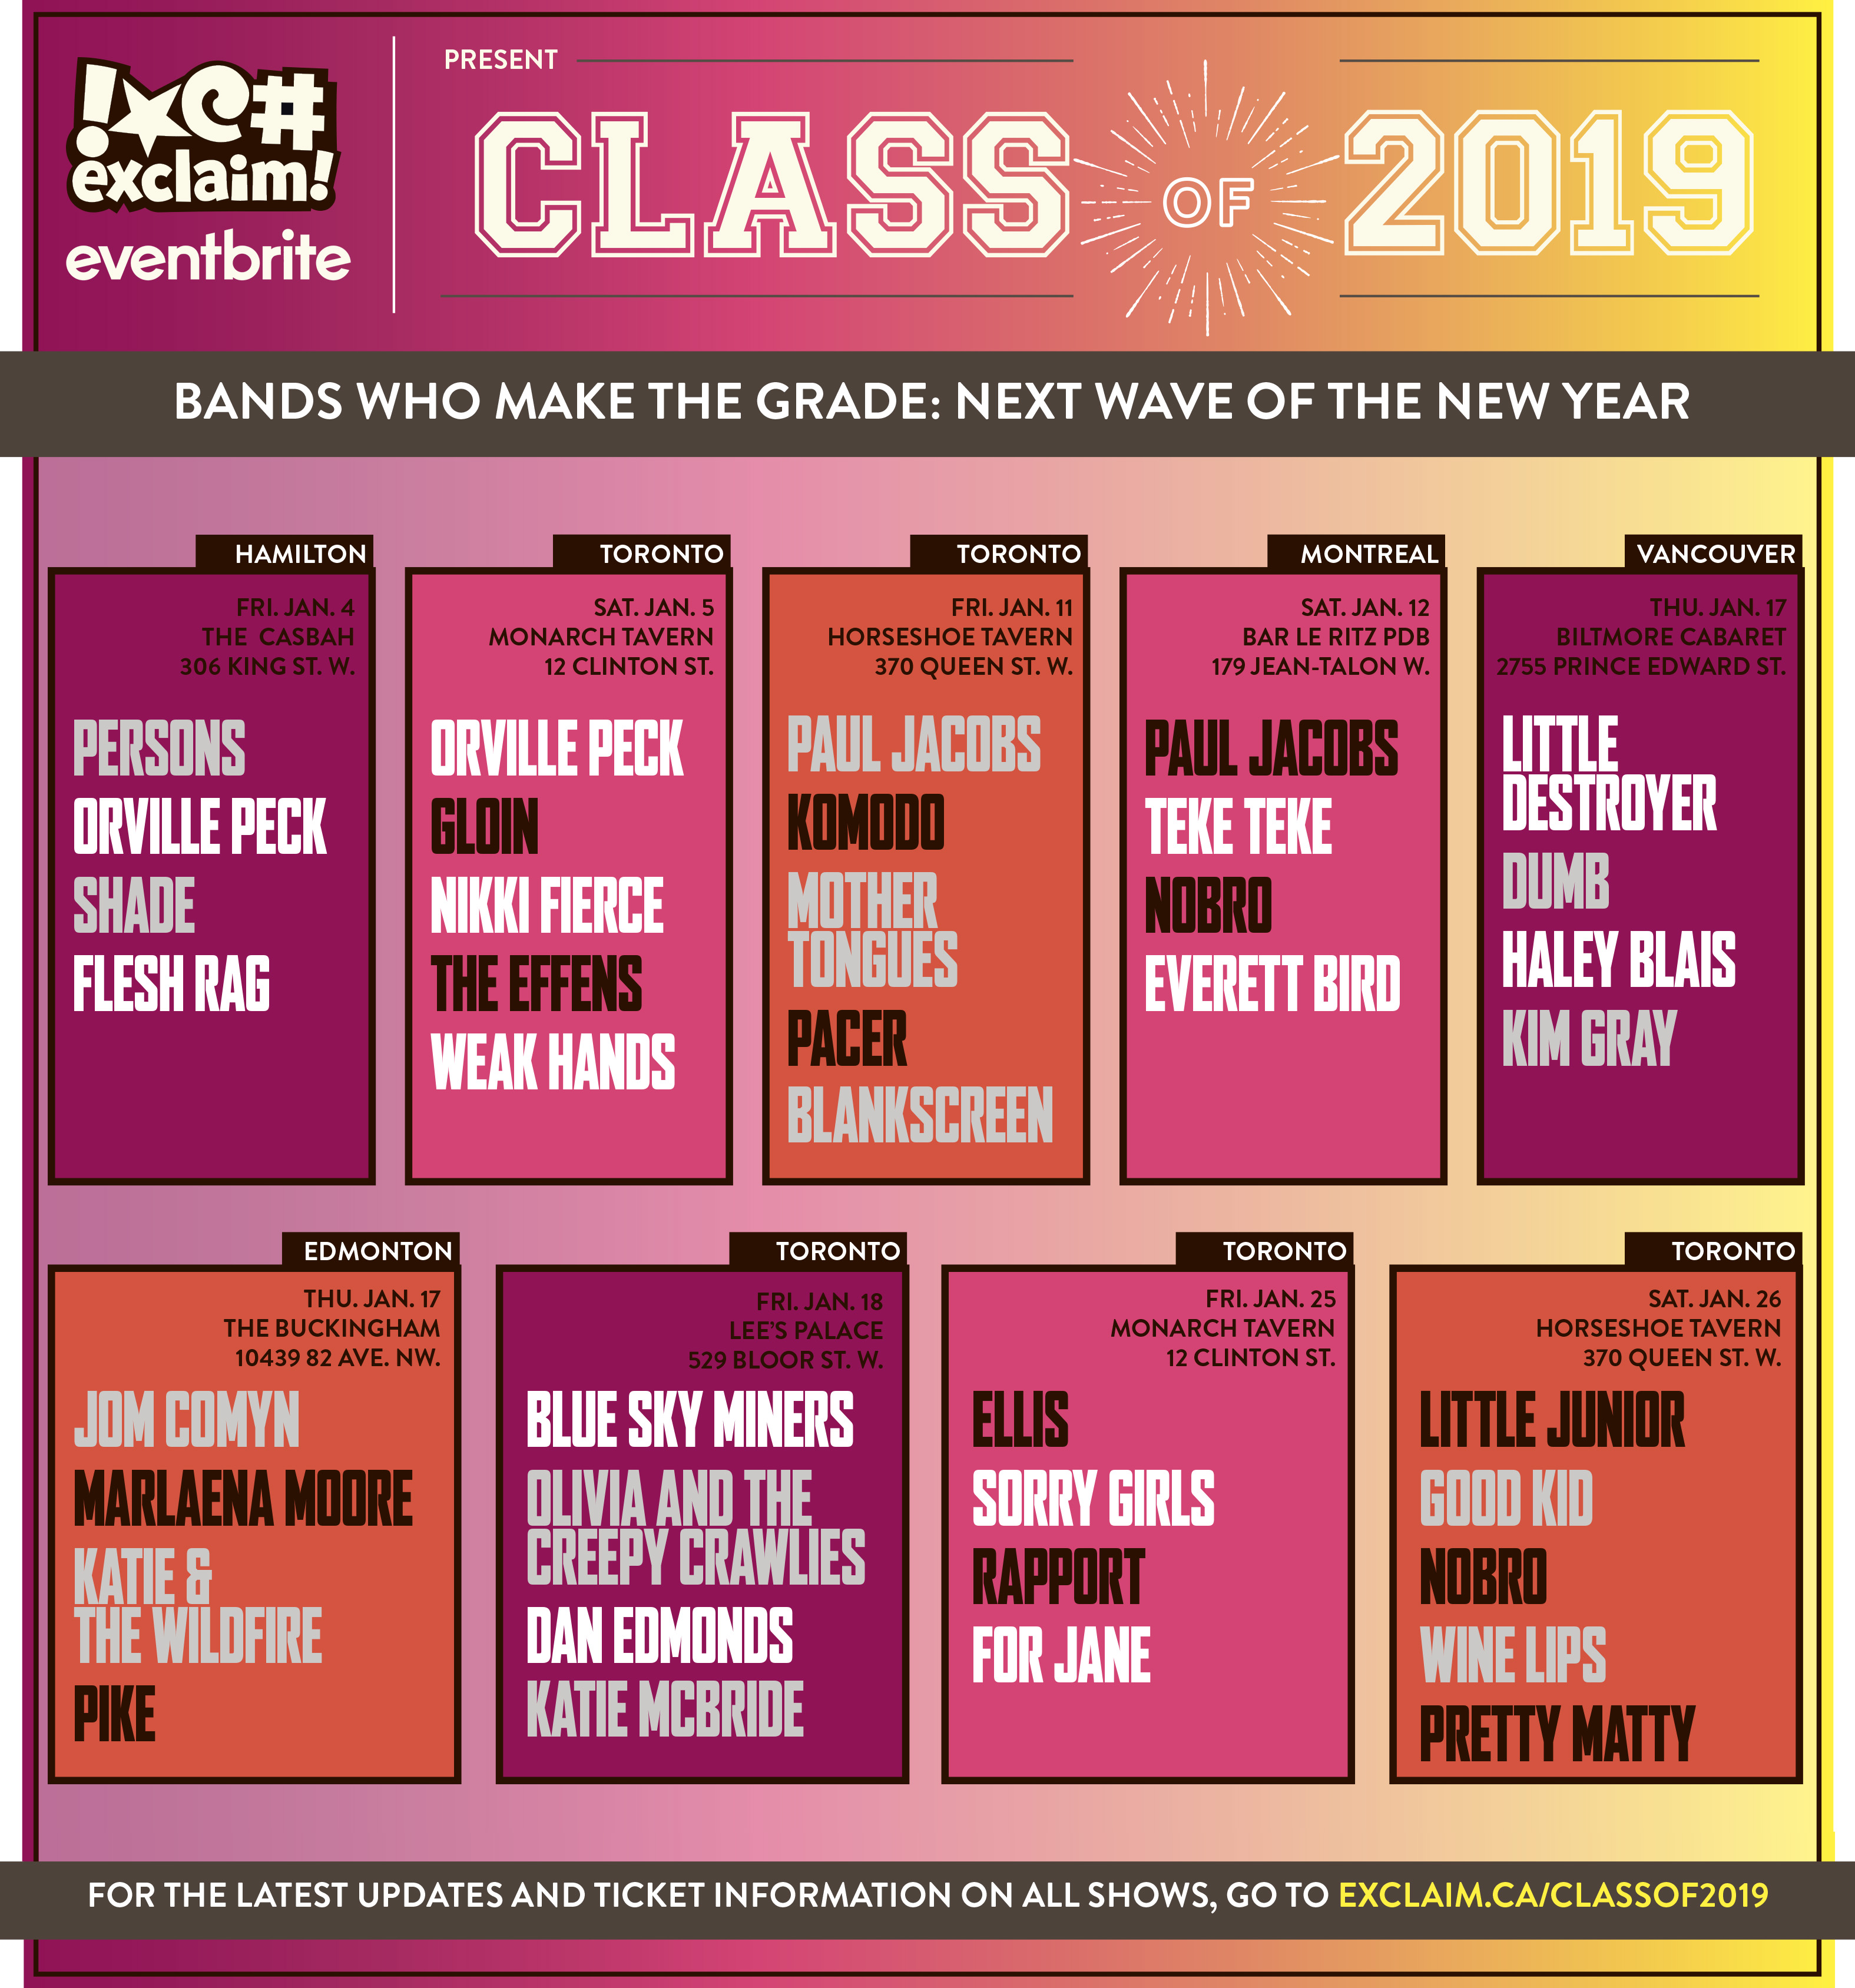 Exclaim! Presents the Class of 2019 Concert Series with Ellis, Paul Jacobs, Little Destroyer, Orville Peck